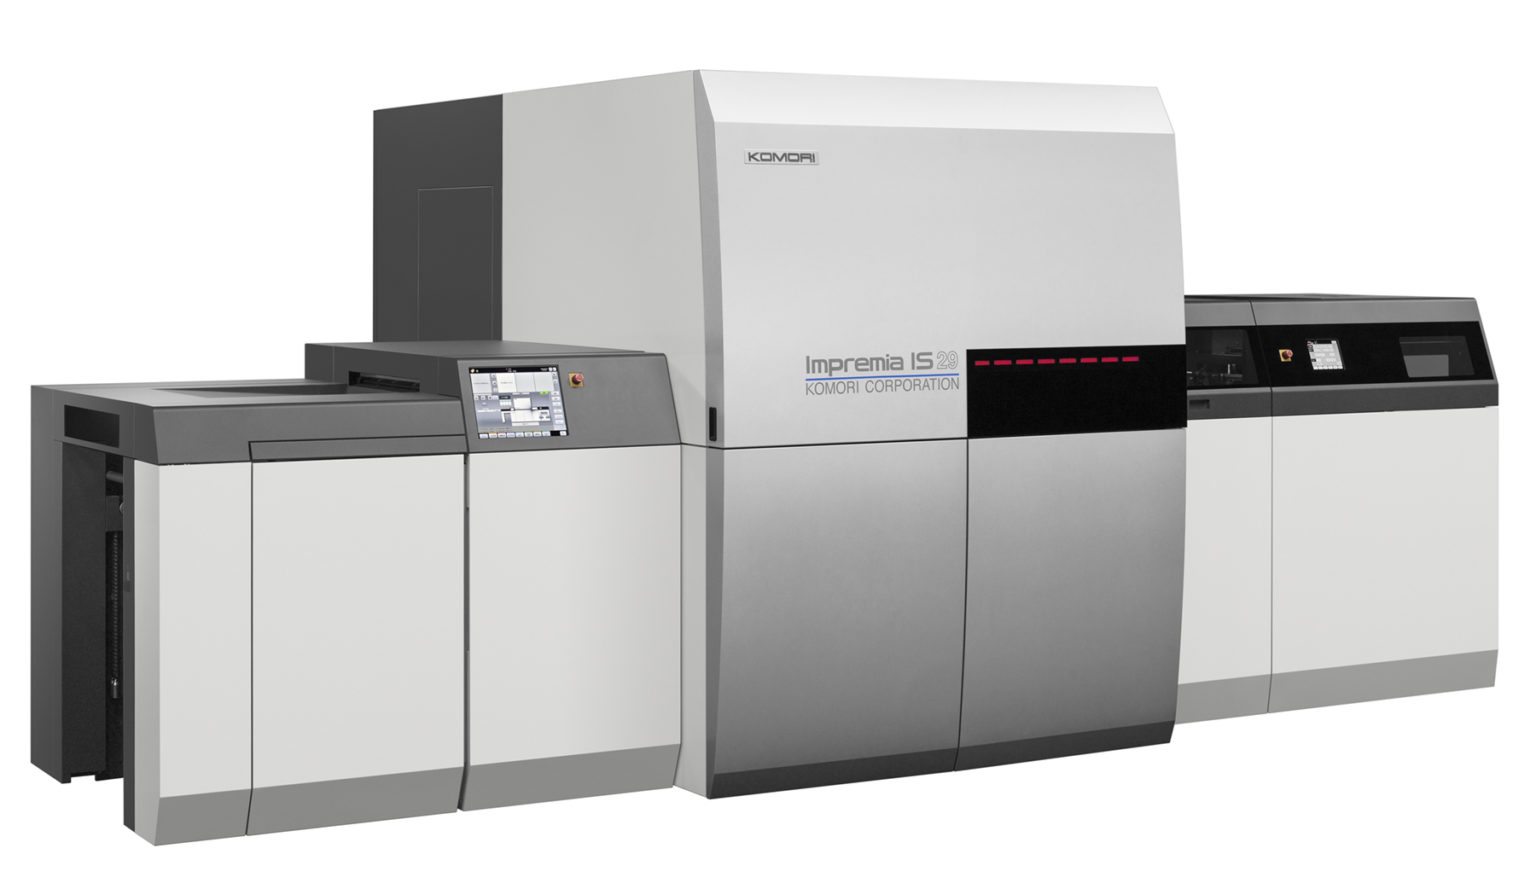 KOMORI Impremia IS2